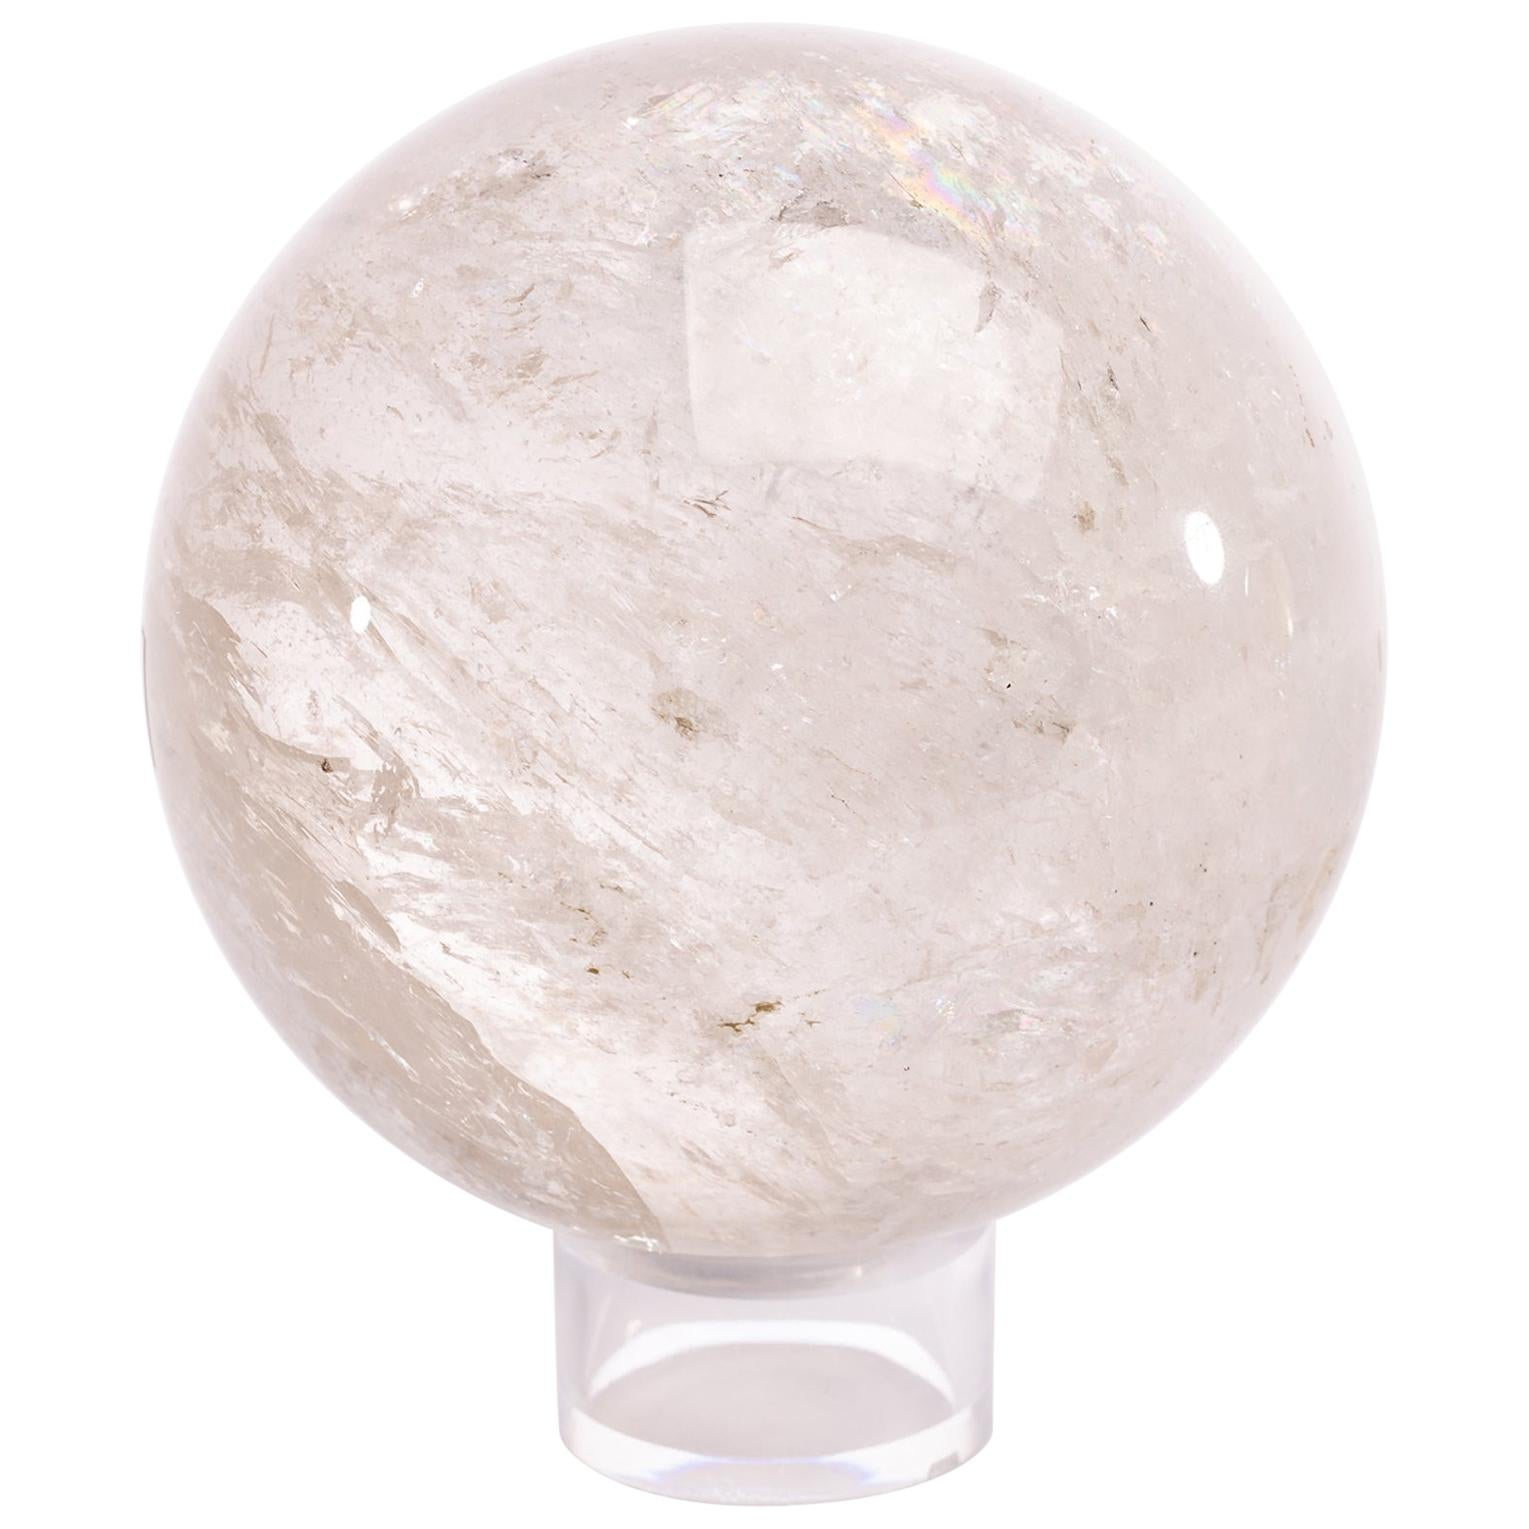 Clear Brazilian Quartz Sphere Mounted on a Acrylic Ring Base